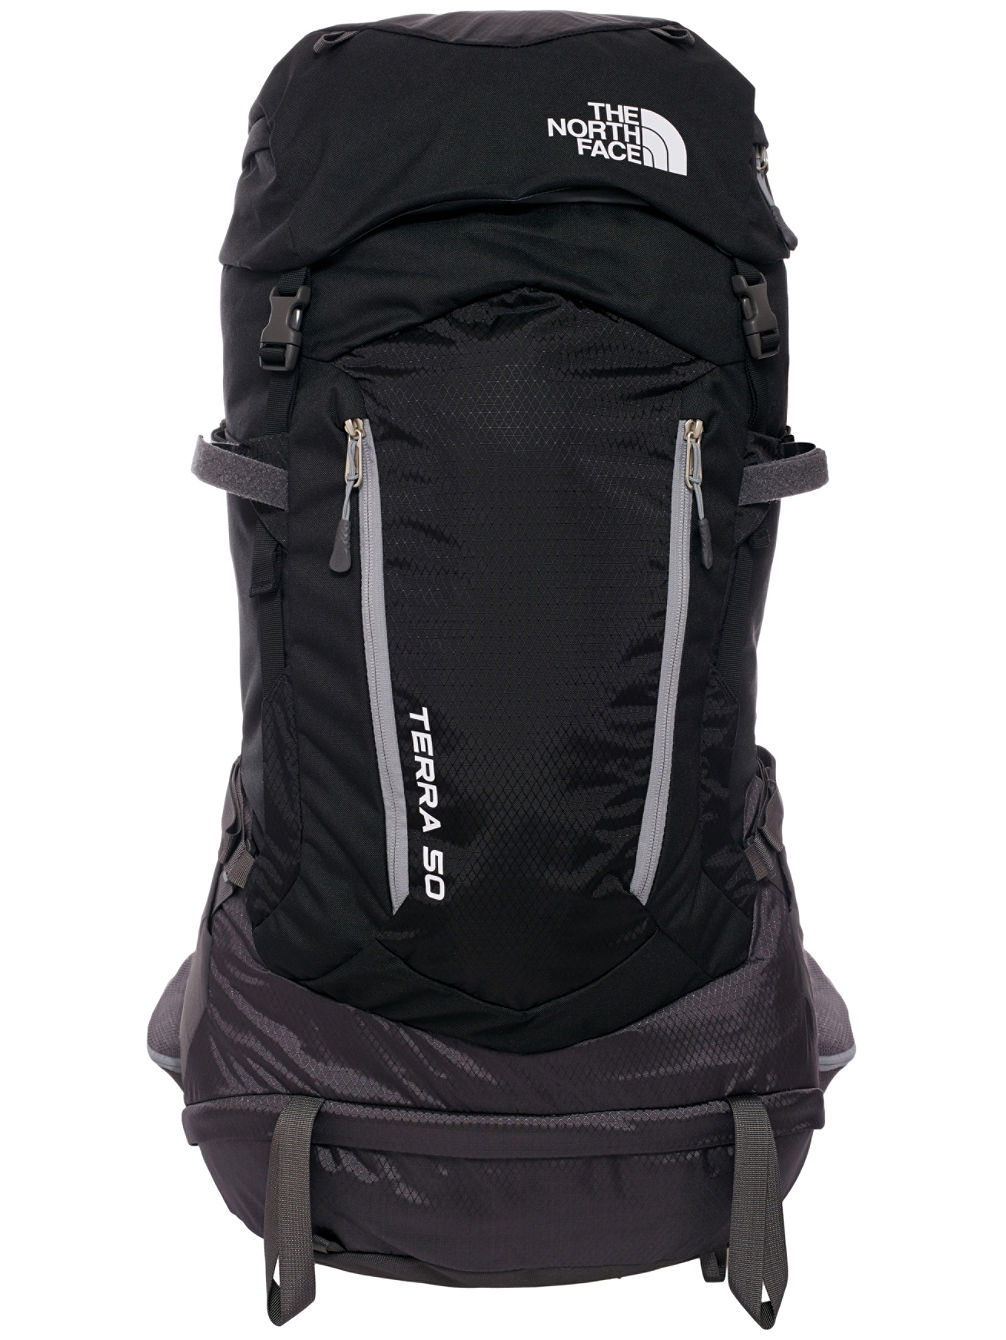 339da6d20c Buy THE NORTH FACE Terra 50L Backpack online at Blue Tomato